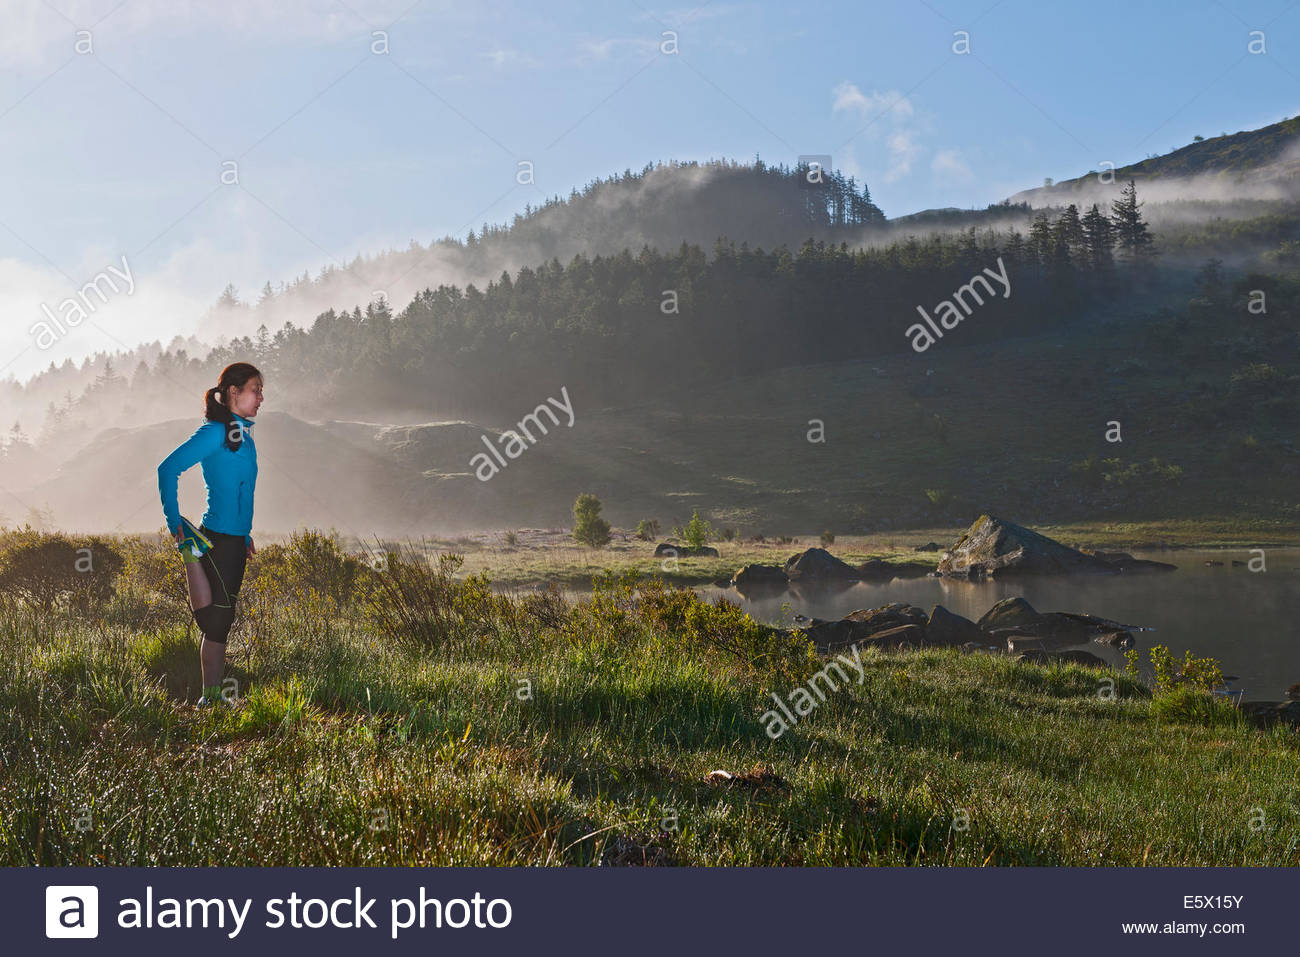 Female runner stretching by lake, Capel Curig, Snowdonia, North Wales, UK - Stock Image